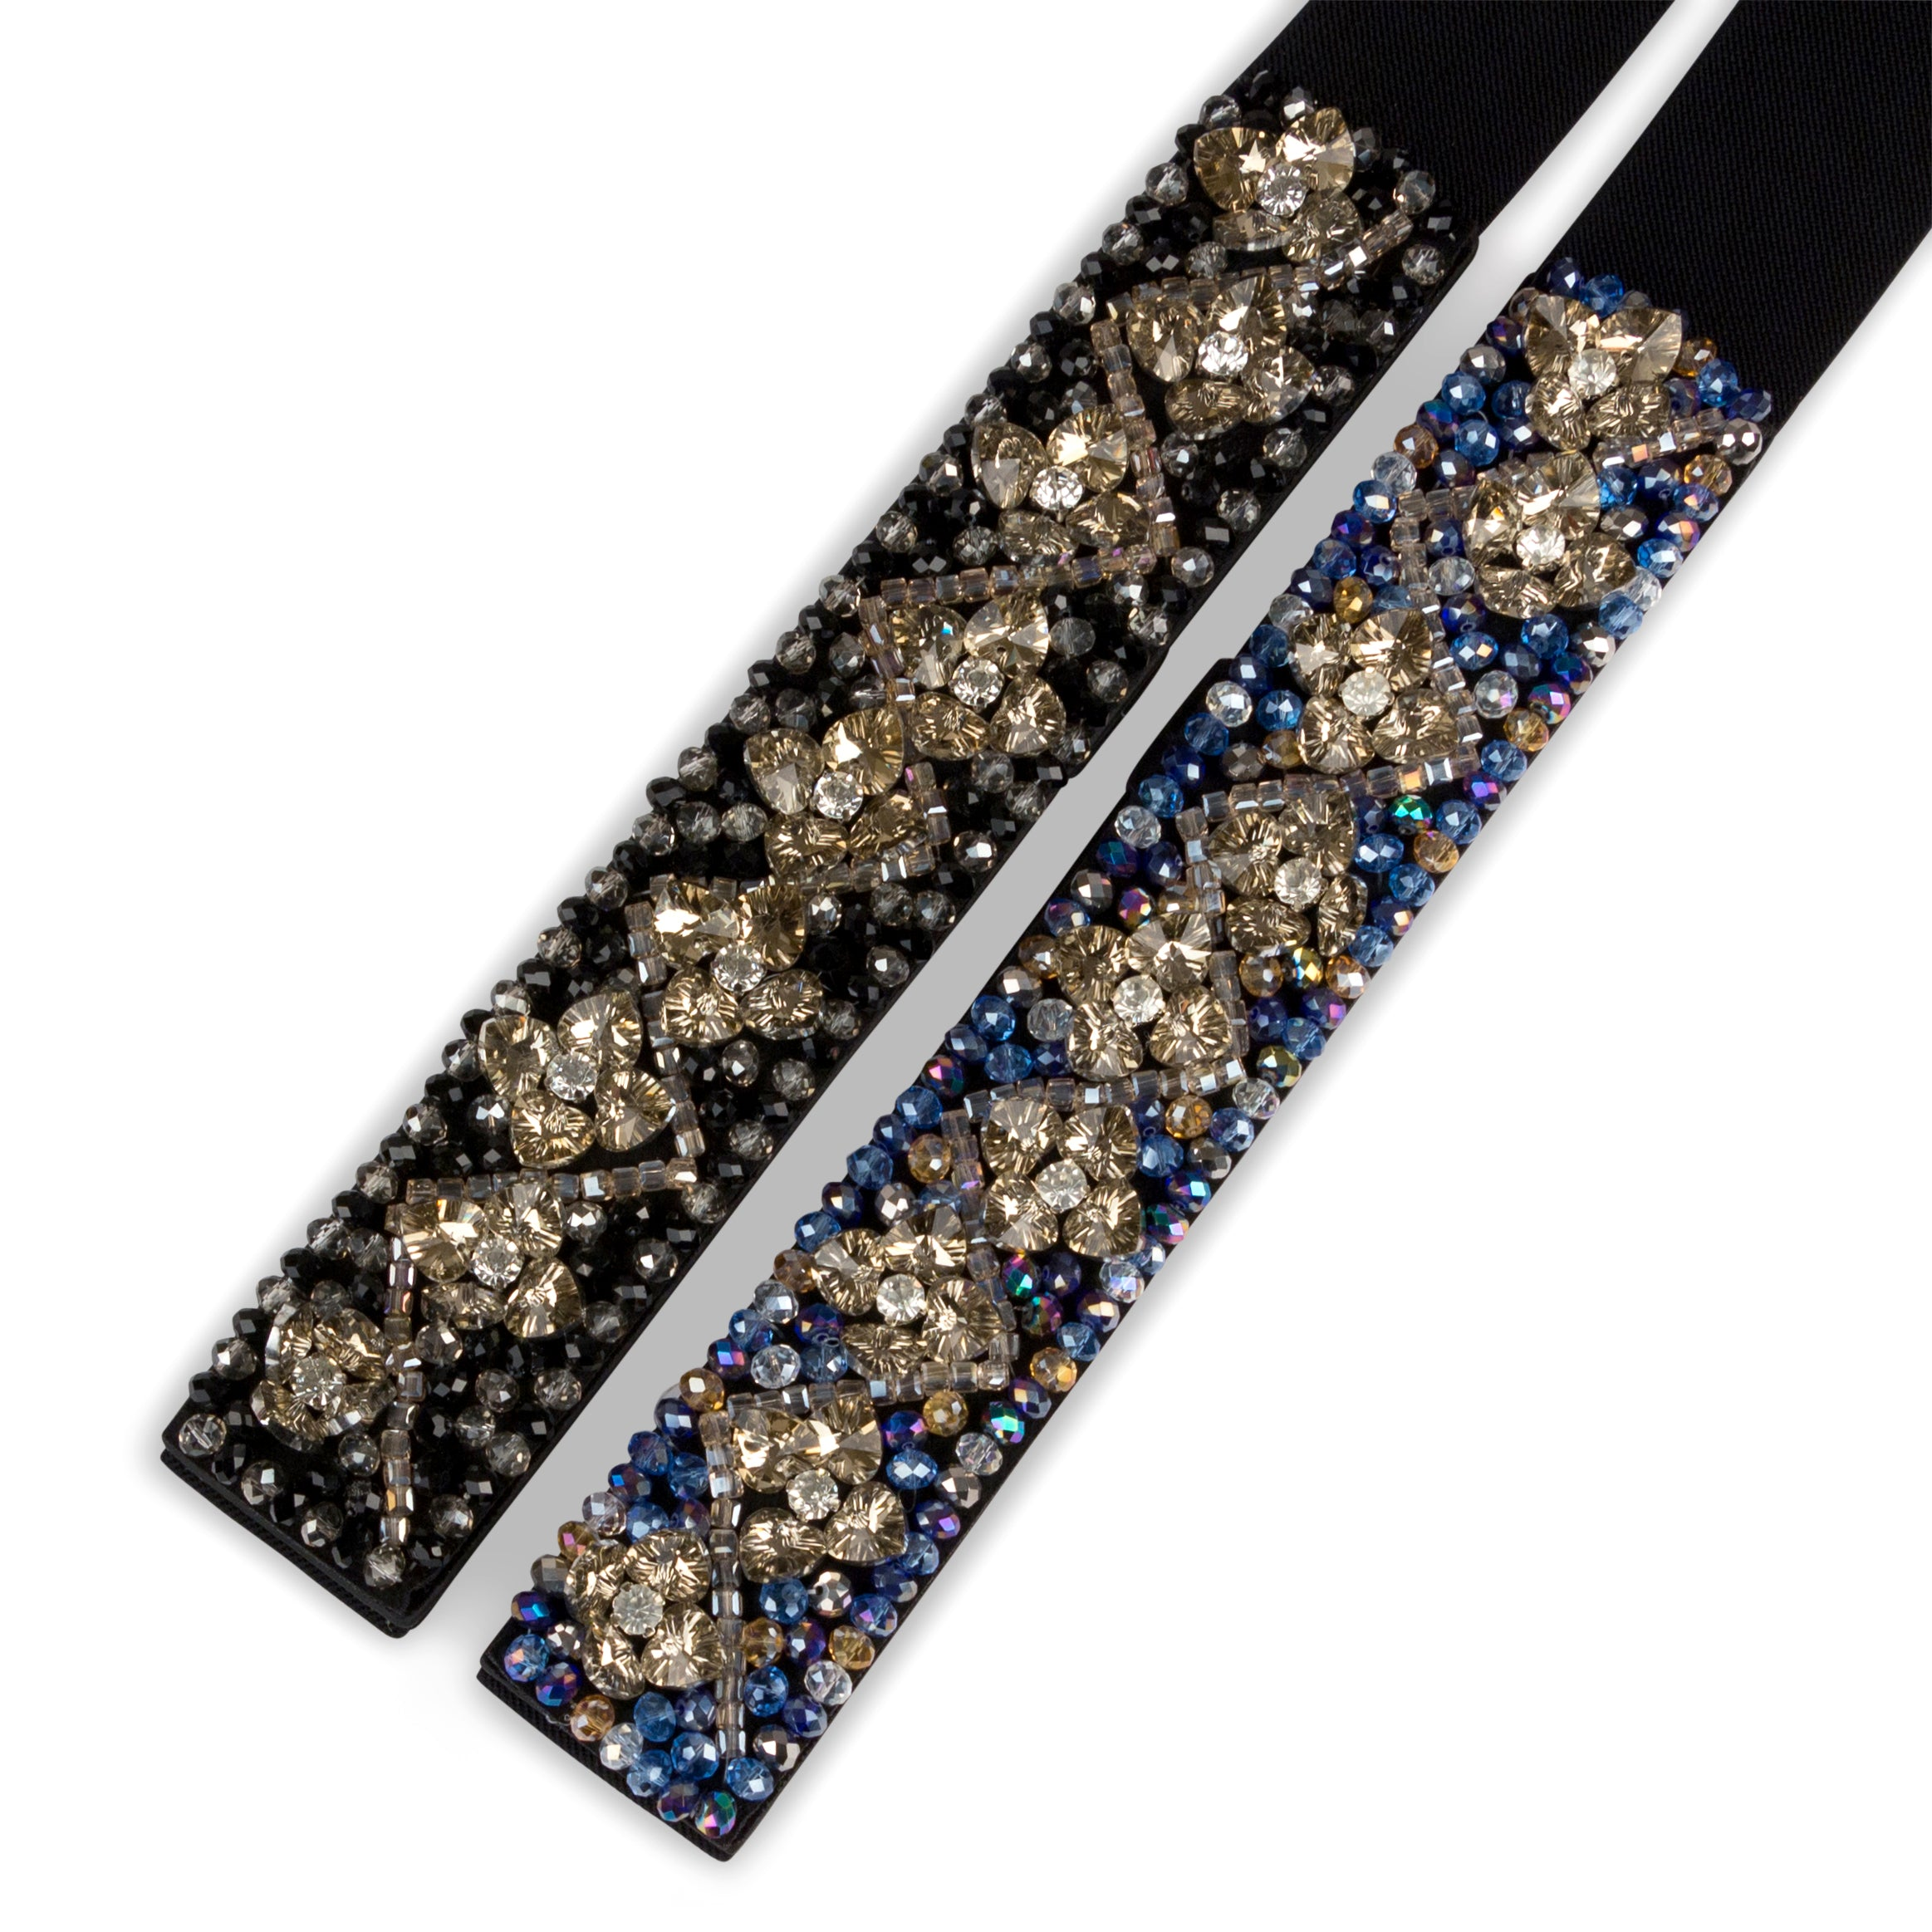 Thick Jeweled Belt - Two 12 Fashion